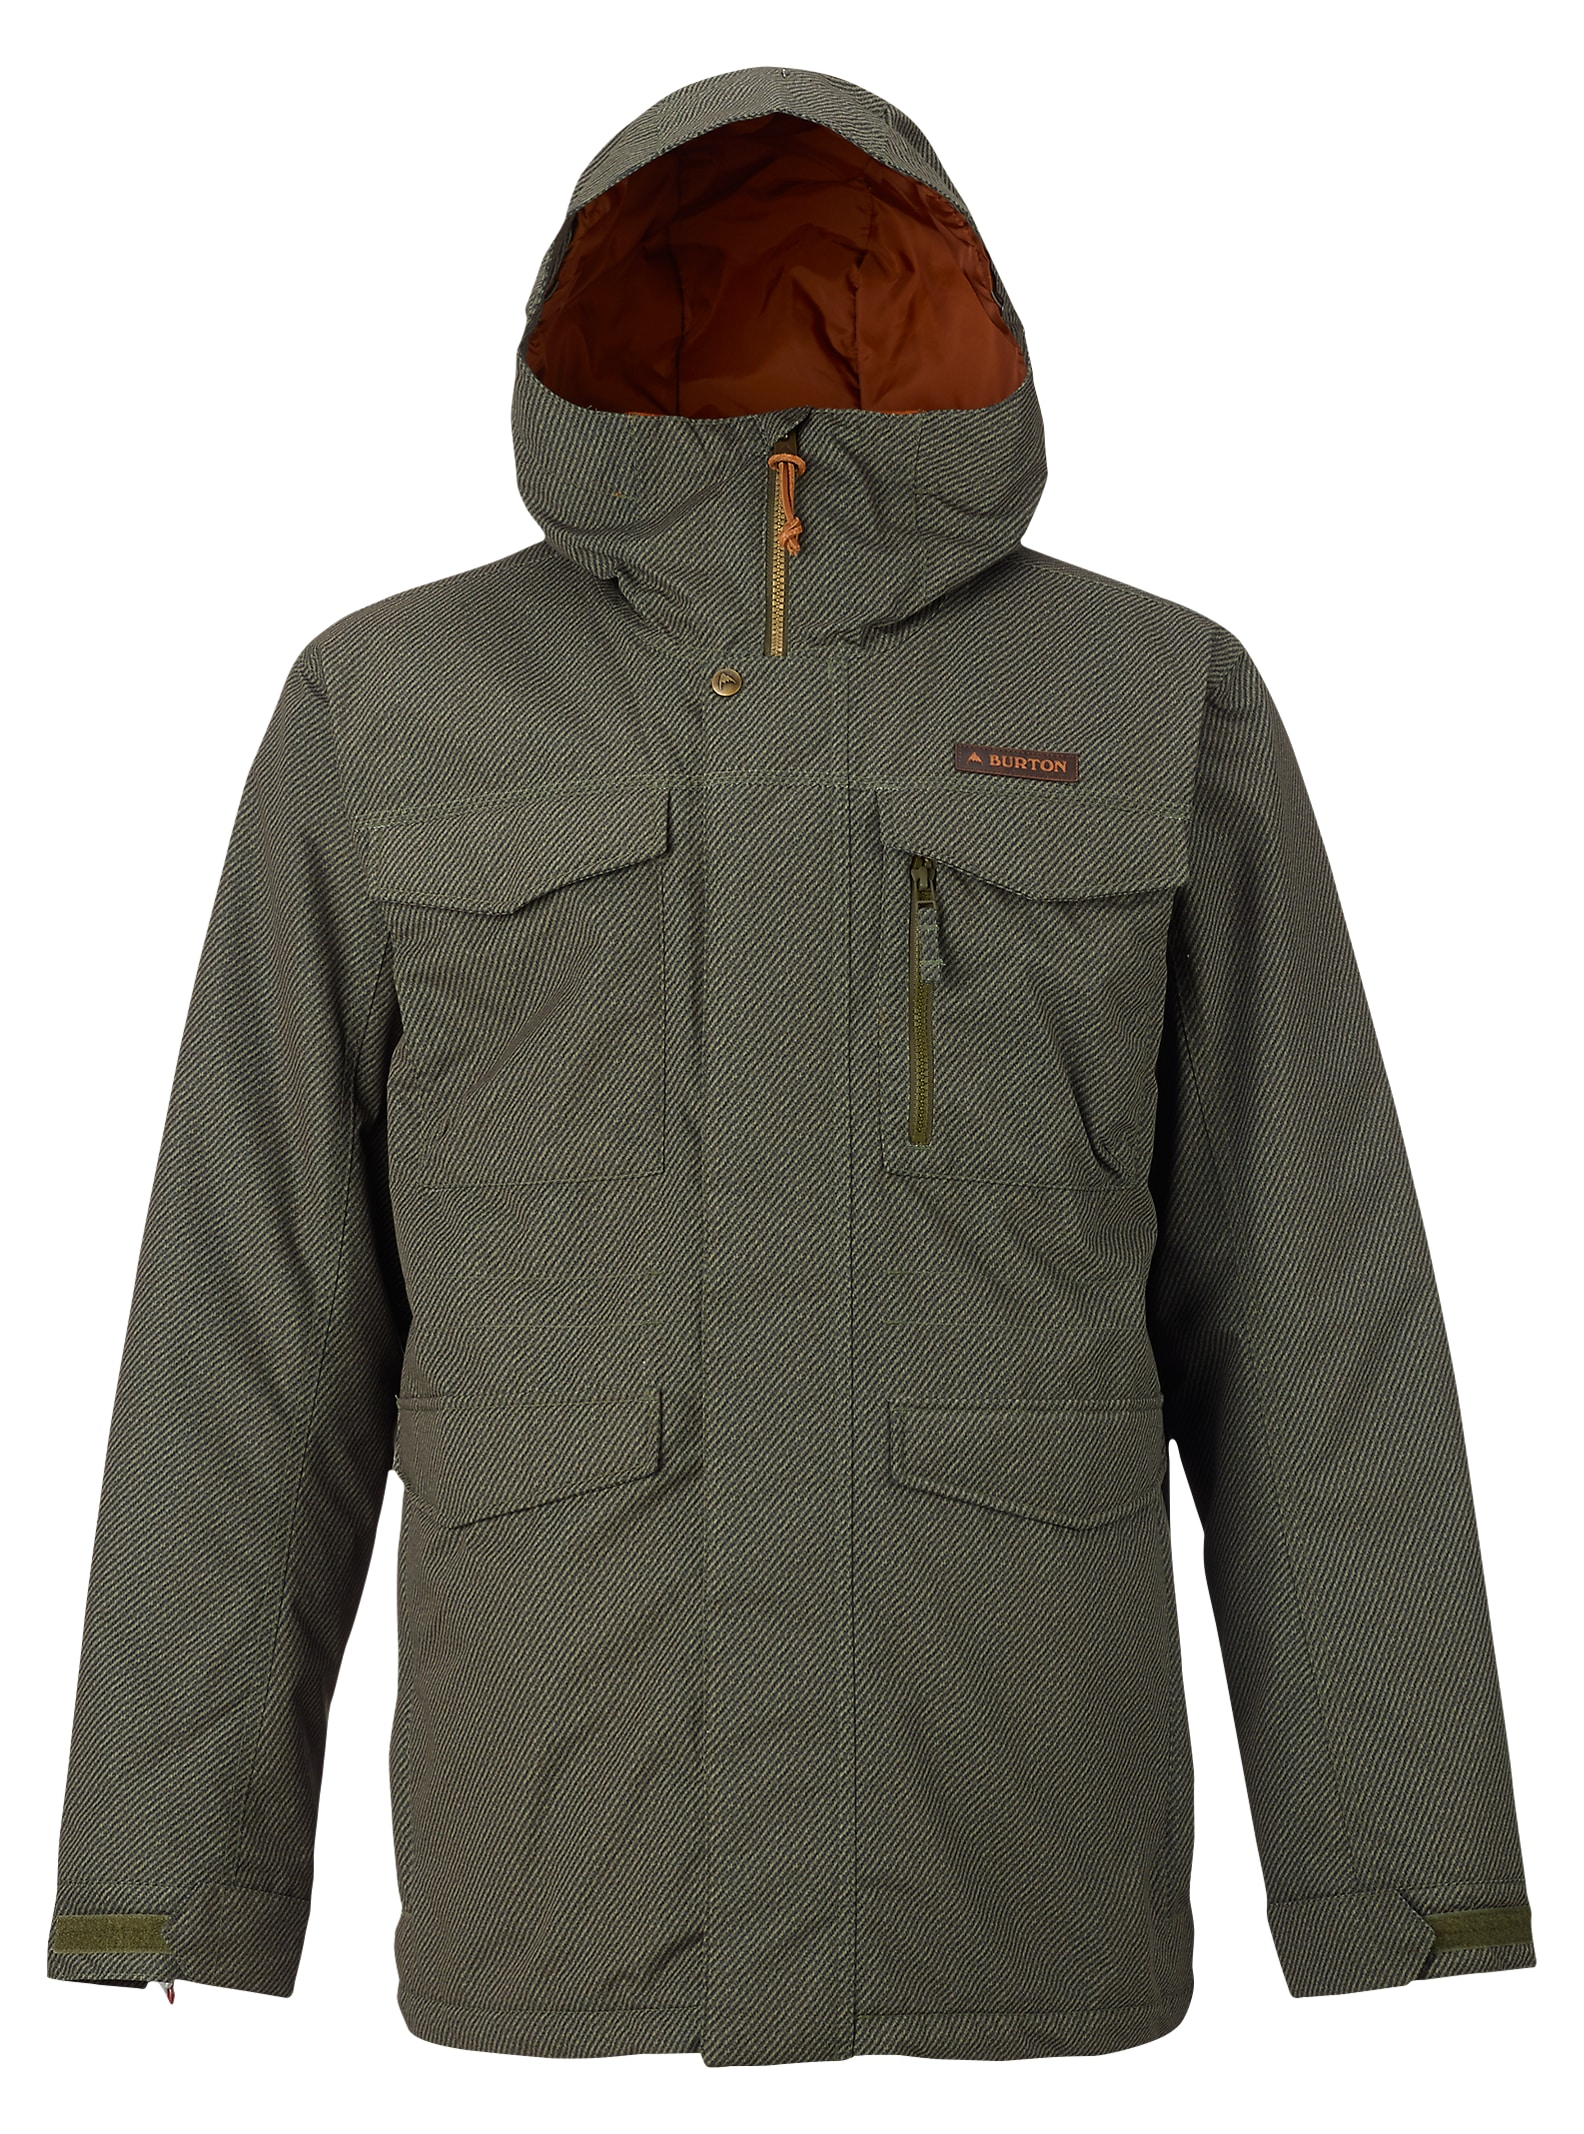 Burton Covert Jacket shown in Keef Underpass Twill